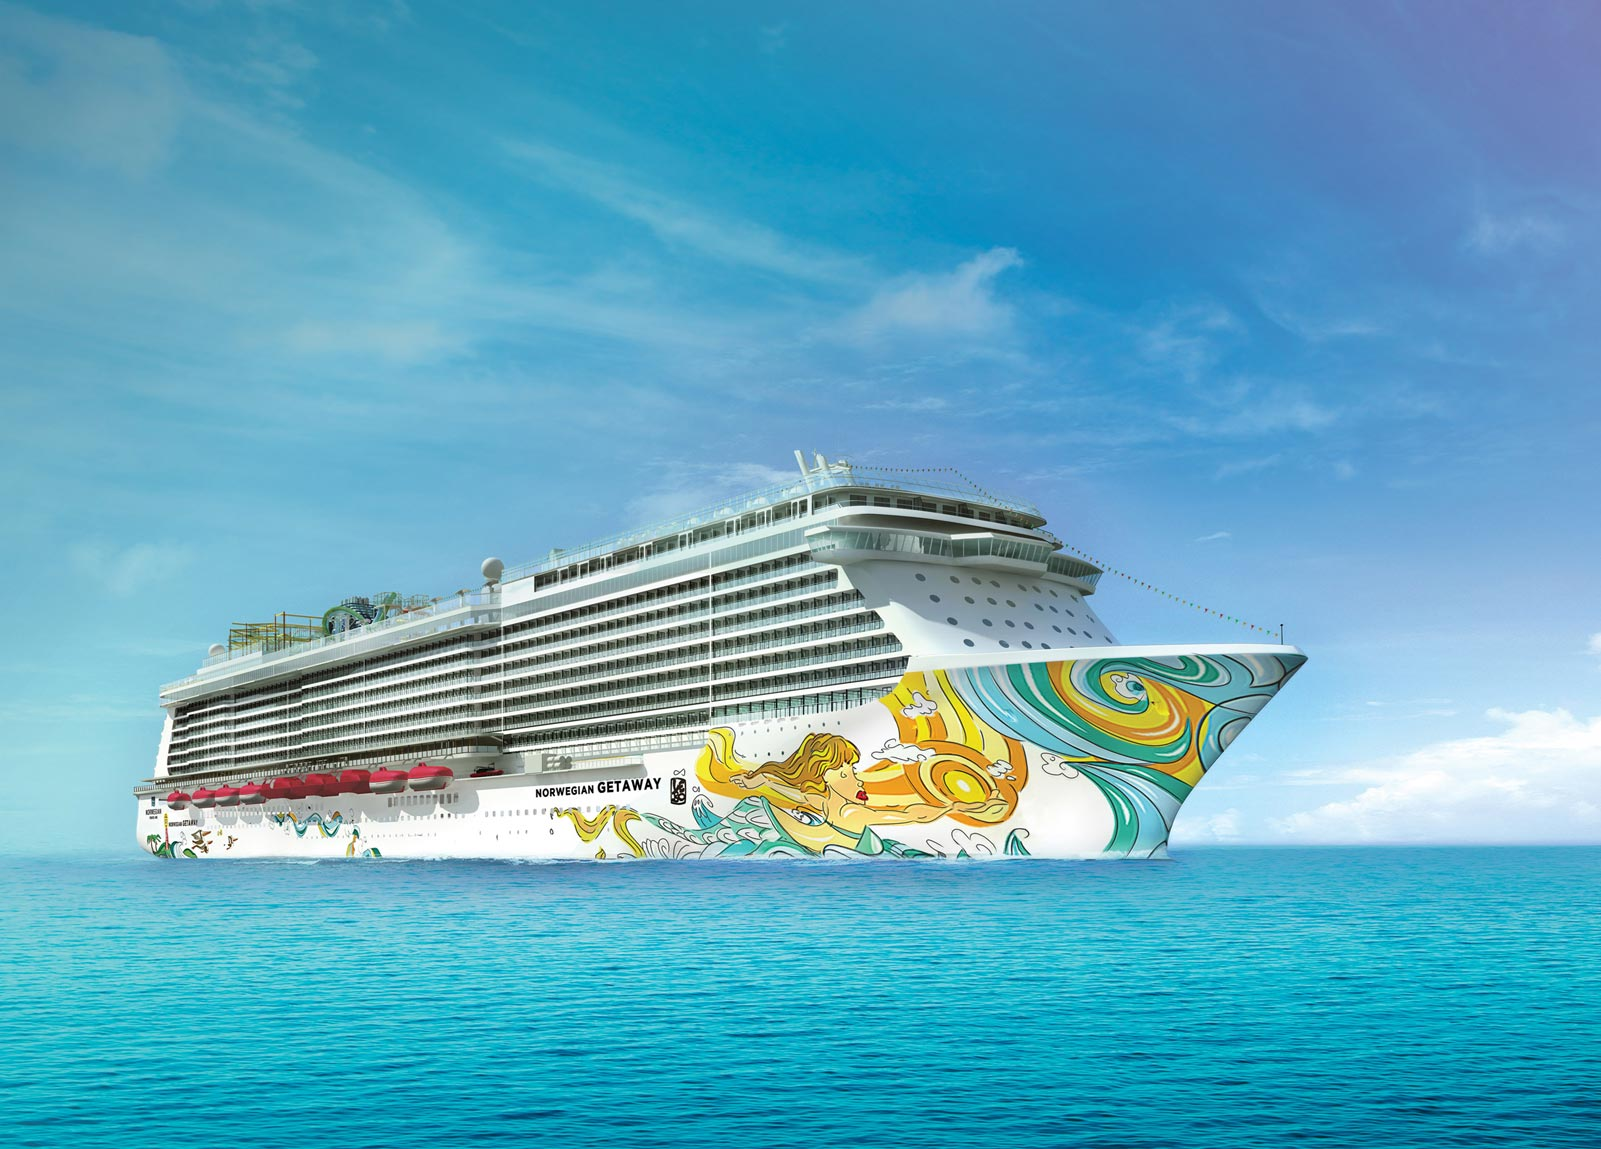 Norwegian cruise line ships norwegian getaway for Best cruise lines in the world